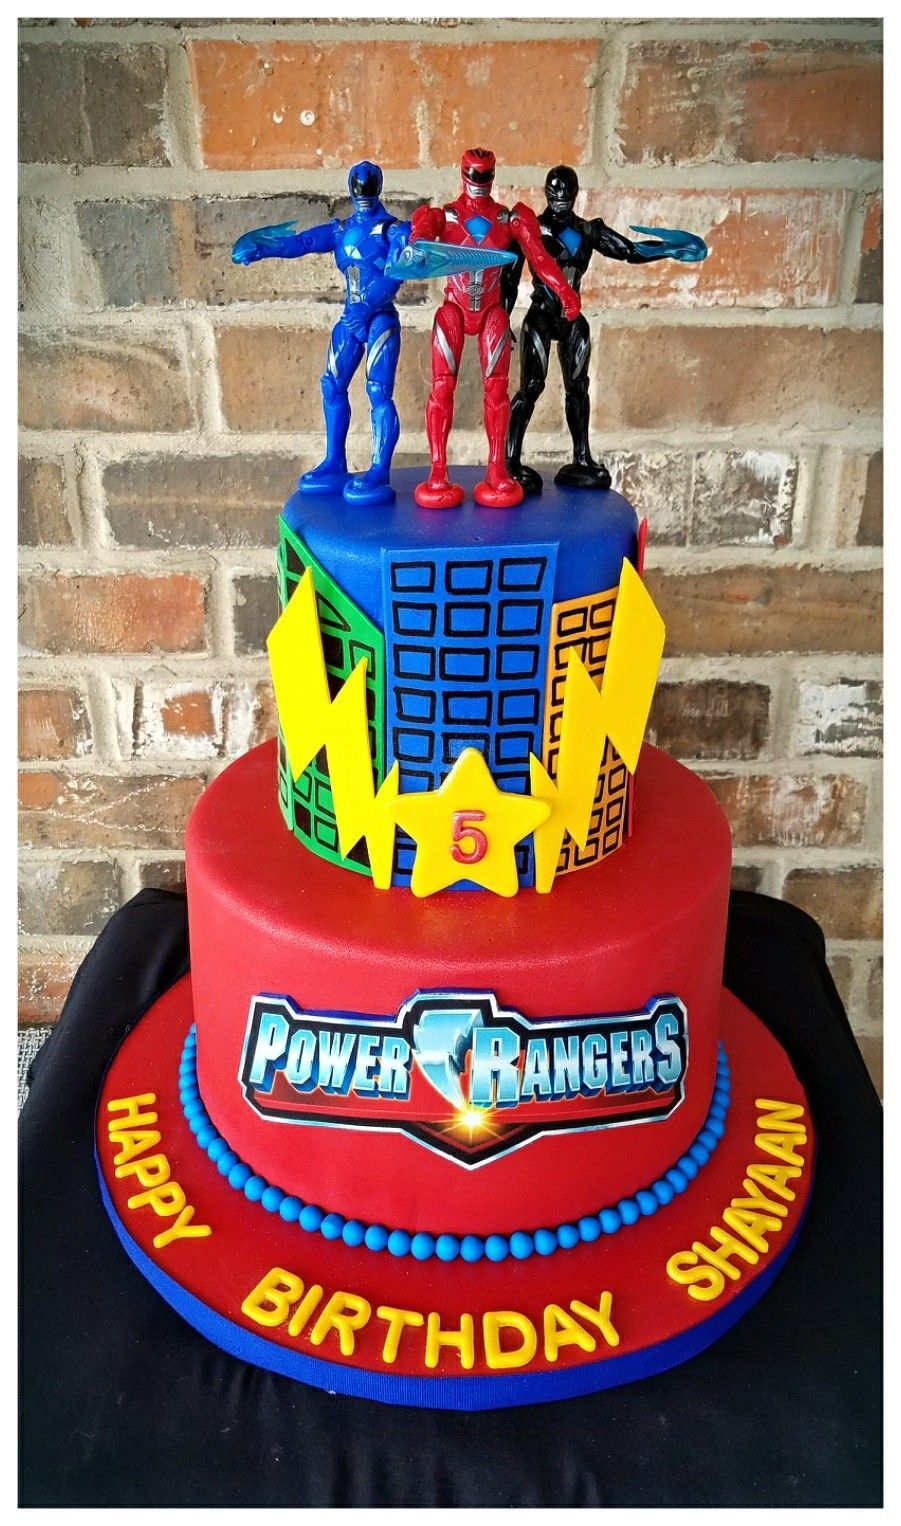 Power Rangers Birthday Cake Related Image Lincolns 5th Cake Pinterest Power Ranger